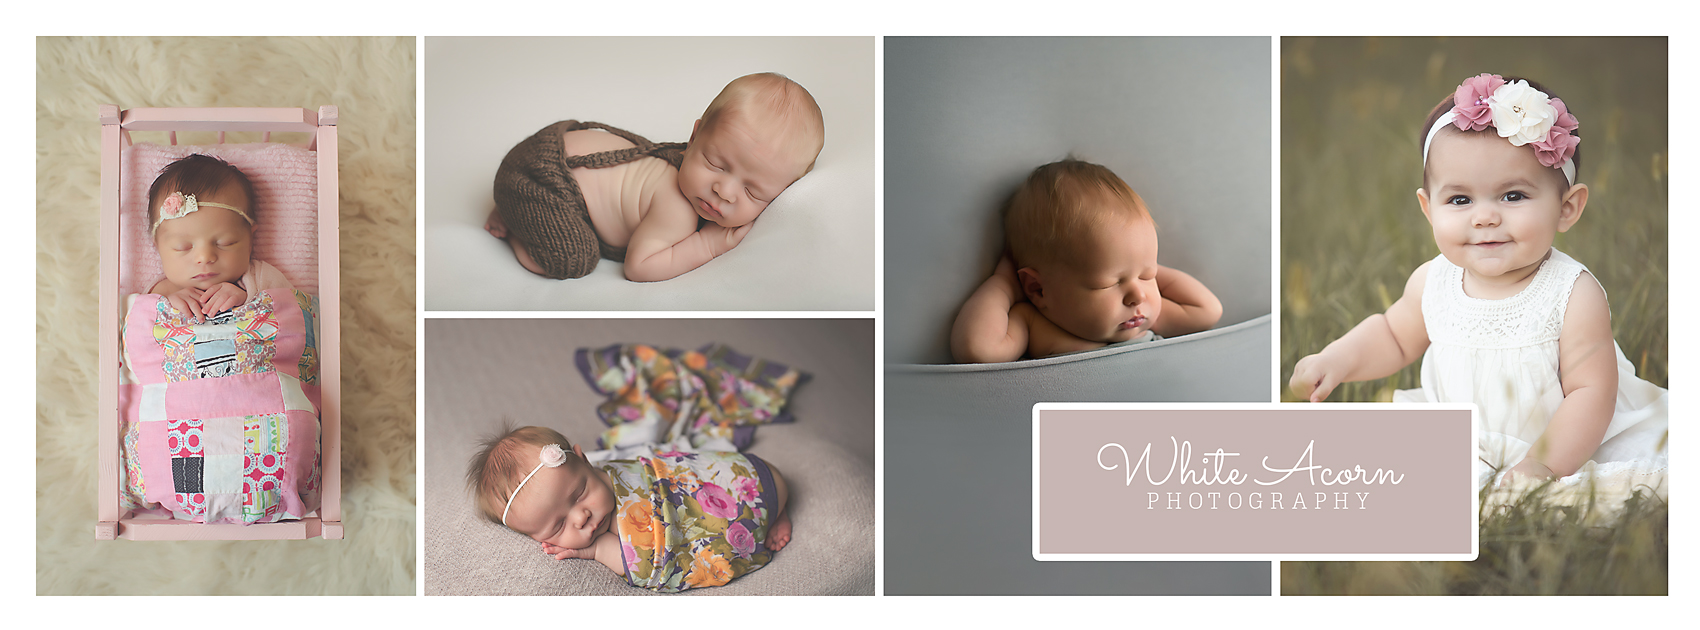 White Acorn Photography - Lincoln NE newborn baby photographer